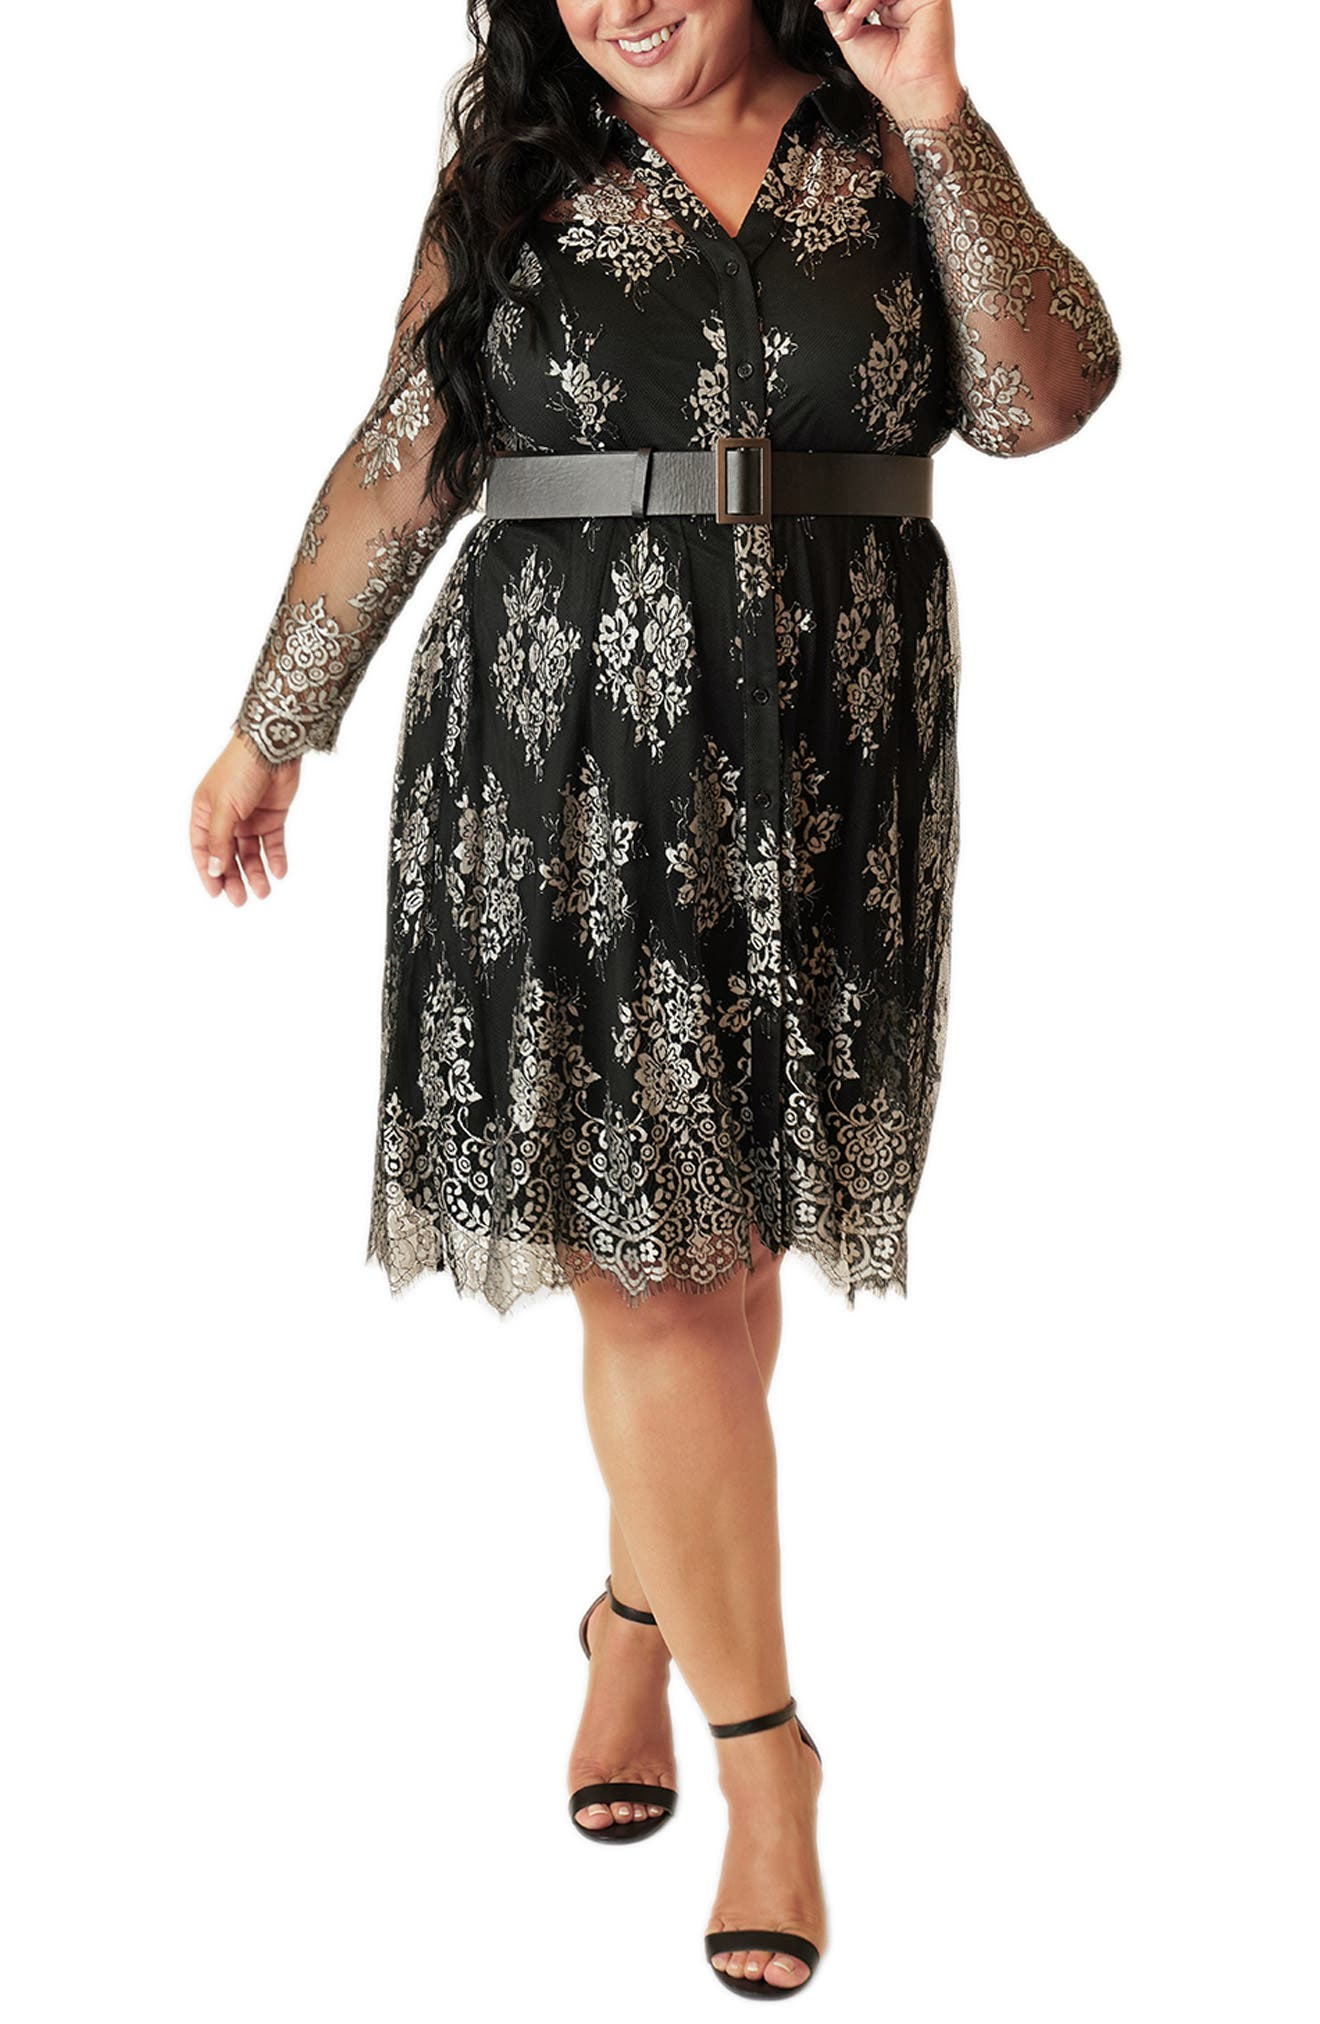 60s 70s Plus Size Dresses, Clothing, Costumes Plus Size Womens Maree Pour Toi Long Sleeve Belted Lace Dress $189.00 AT vintagedancer.com